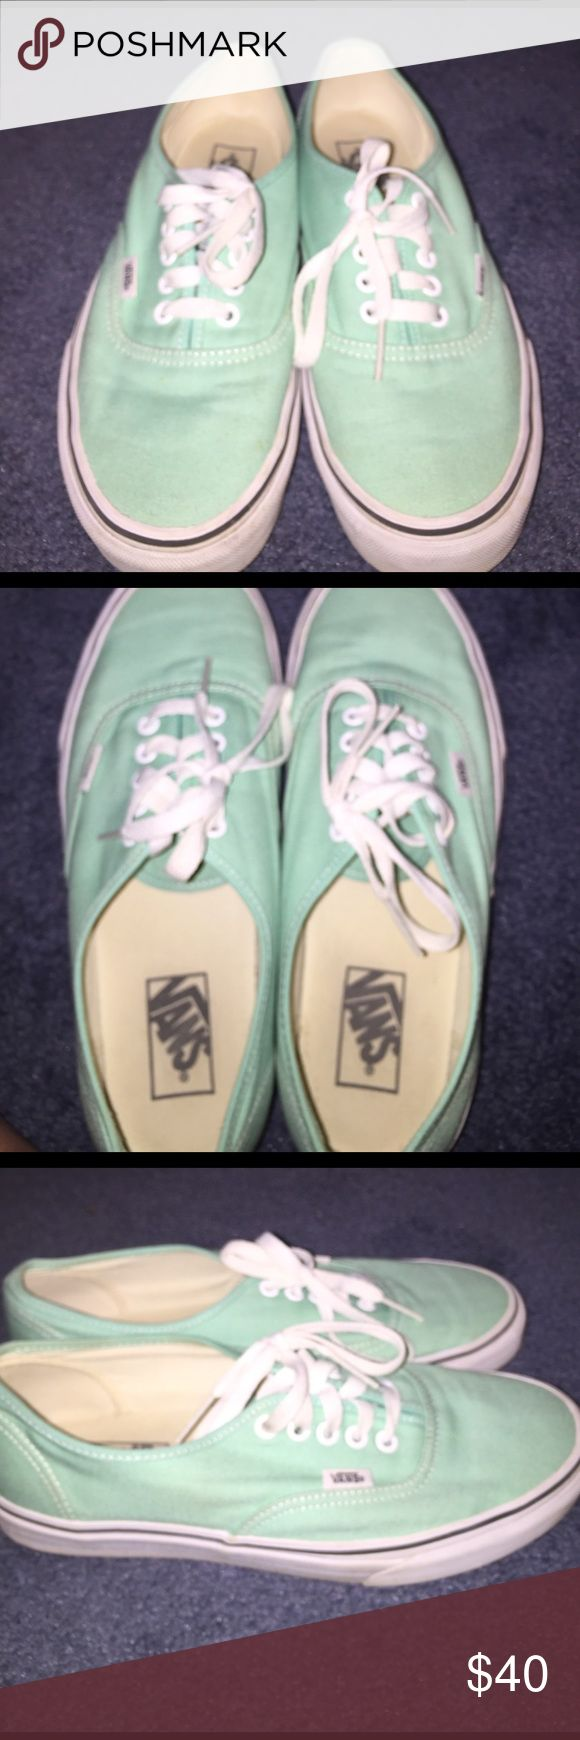 New Mint Green Vans Bought these a while ago and never have worn them. They are a mens 8.5 and a womens 10. Amazing condition and very comfy. Just looking to downgrade my closet. Vans Shoes Sneakers